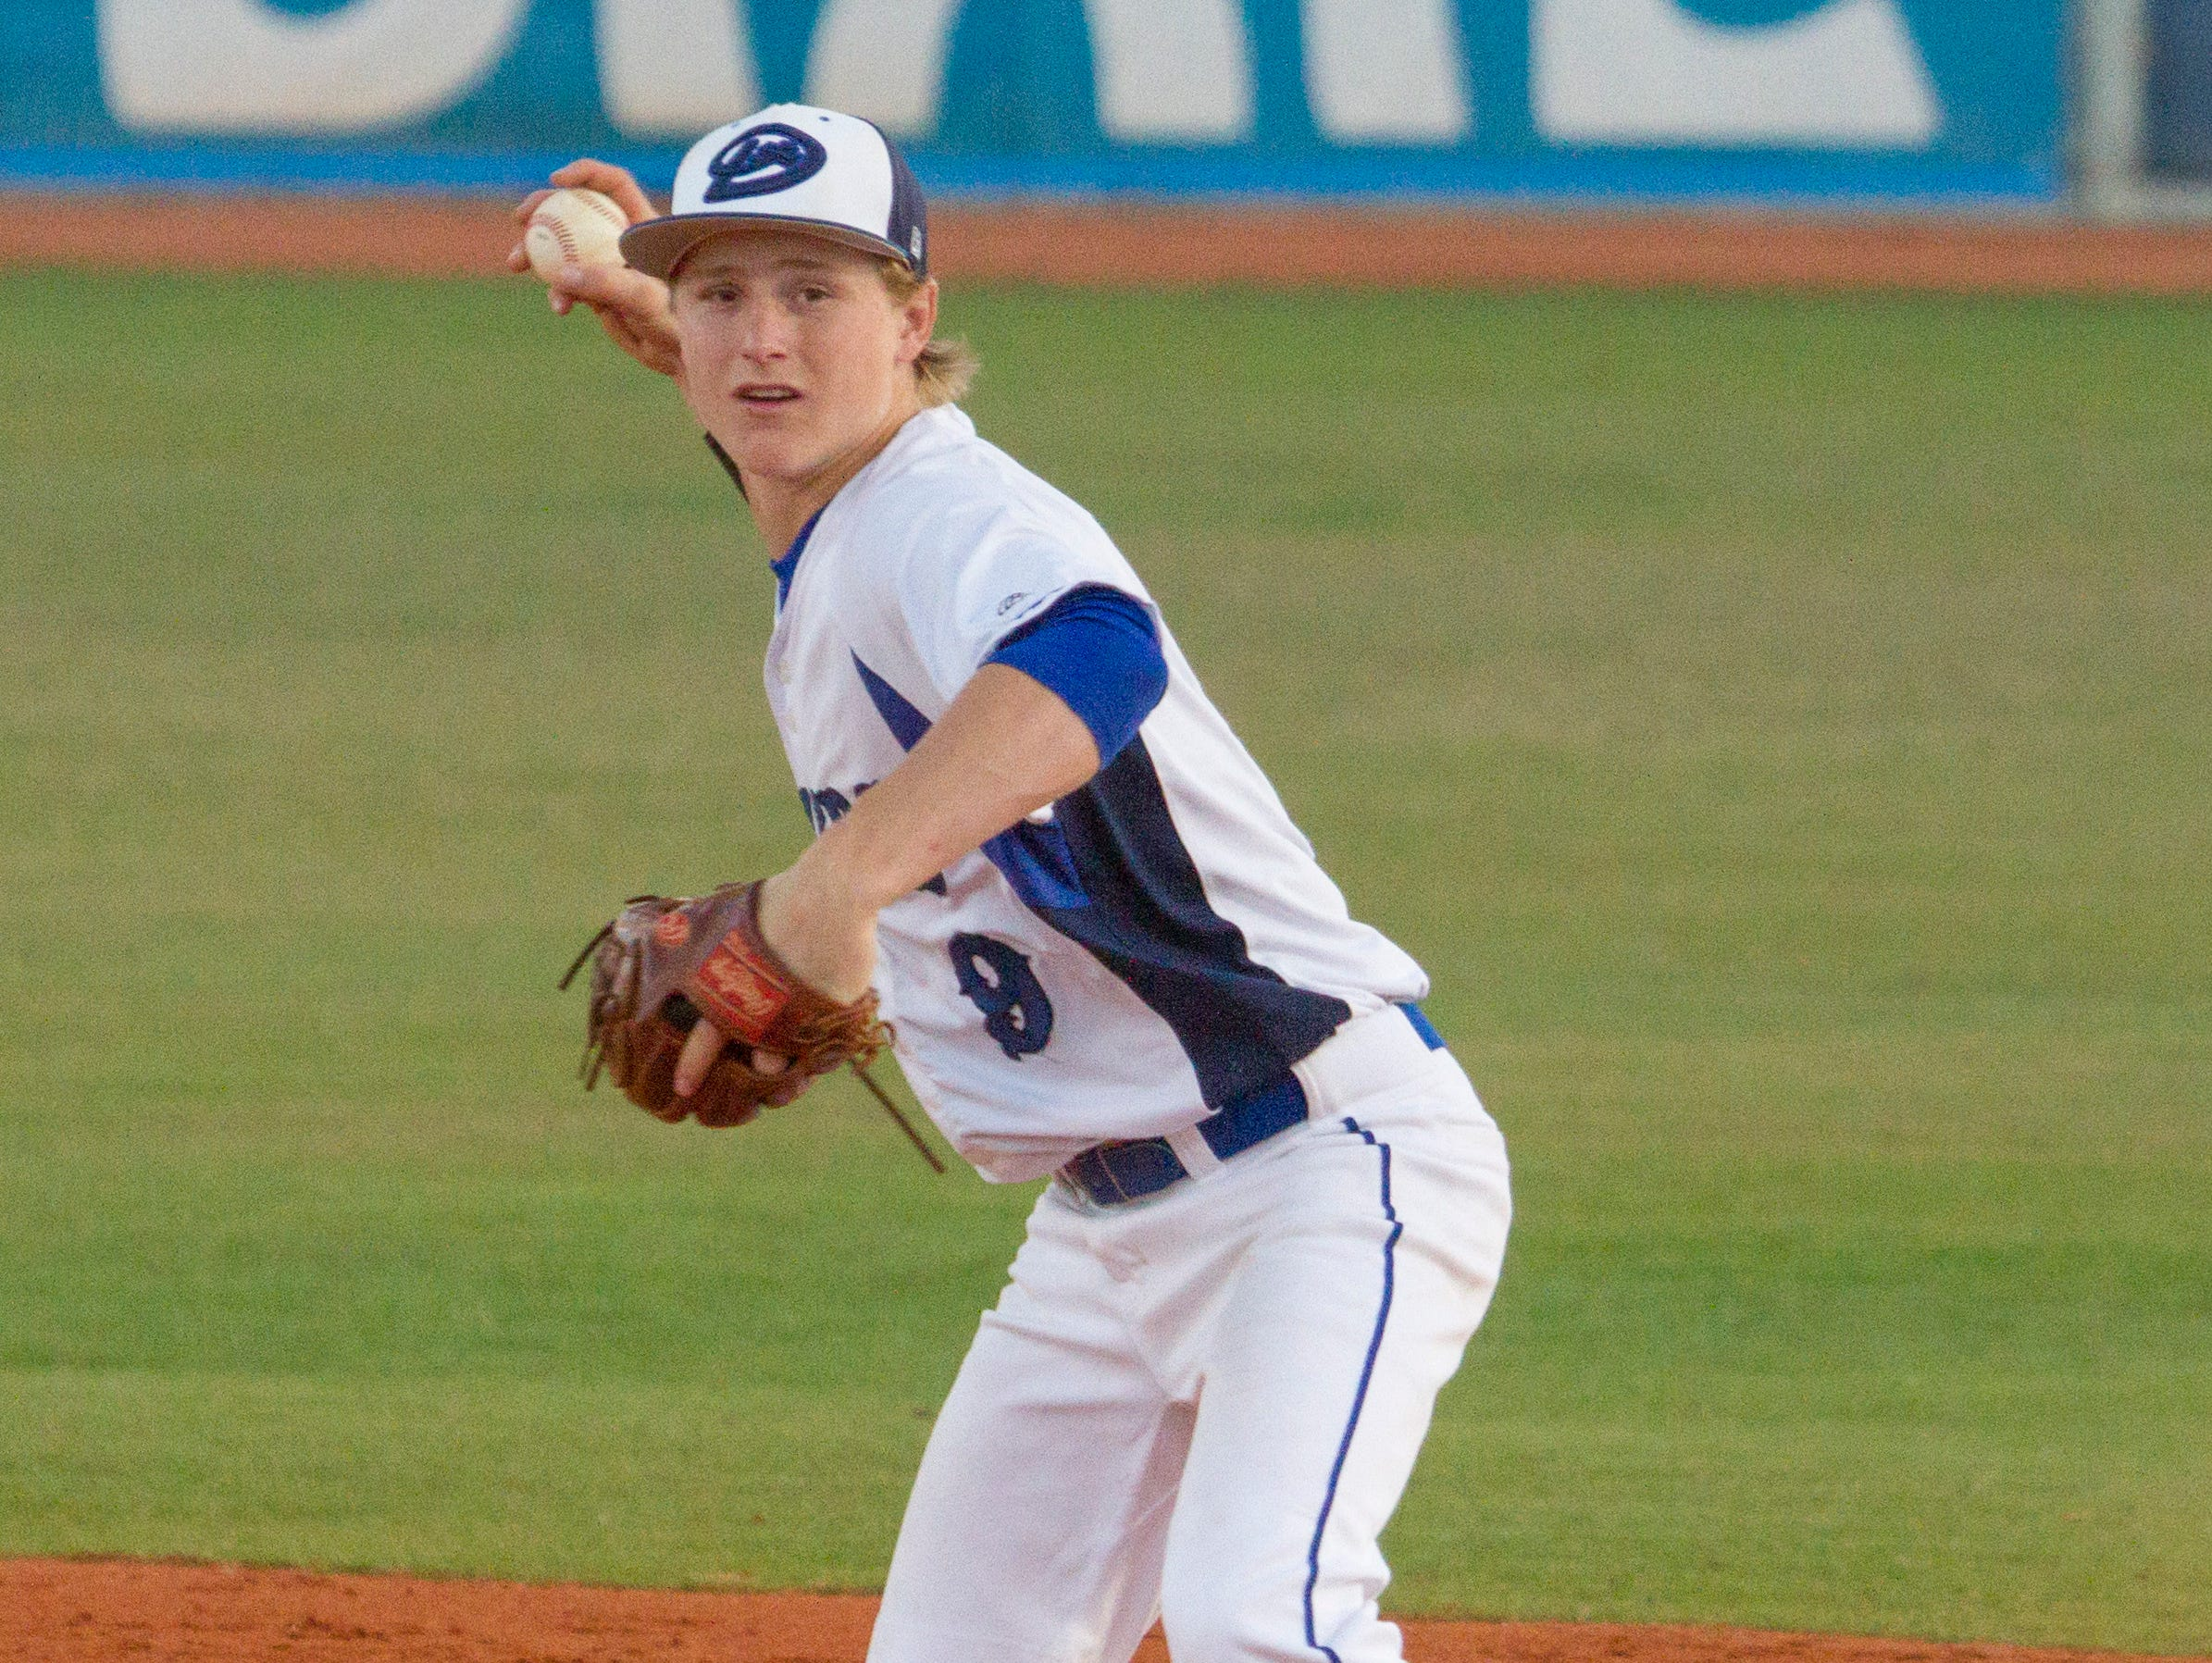 Dixie's Hobbs Nyberg had the game-winning hit in Tuesday' 3-2 come-from-behind victory over Cedar in the Region 9 opener.